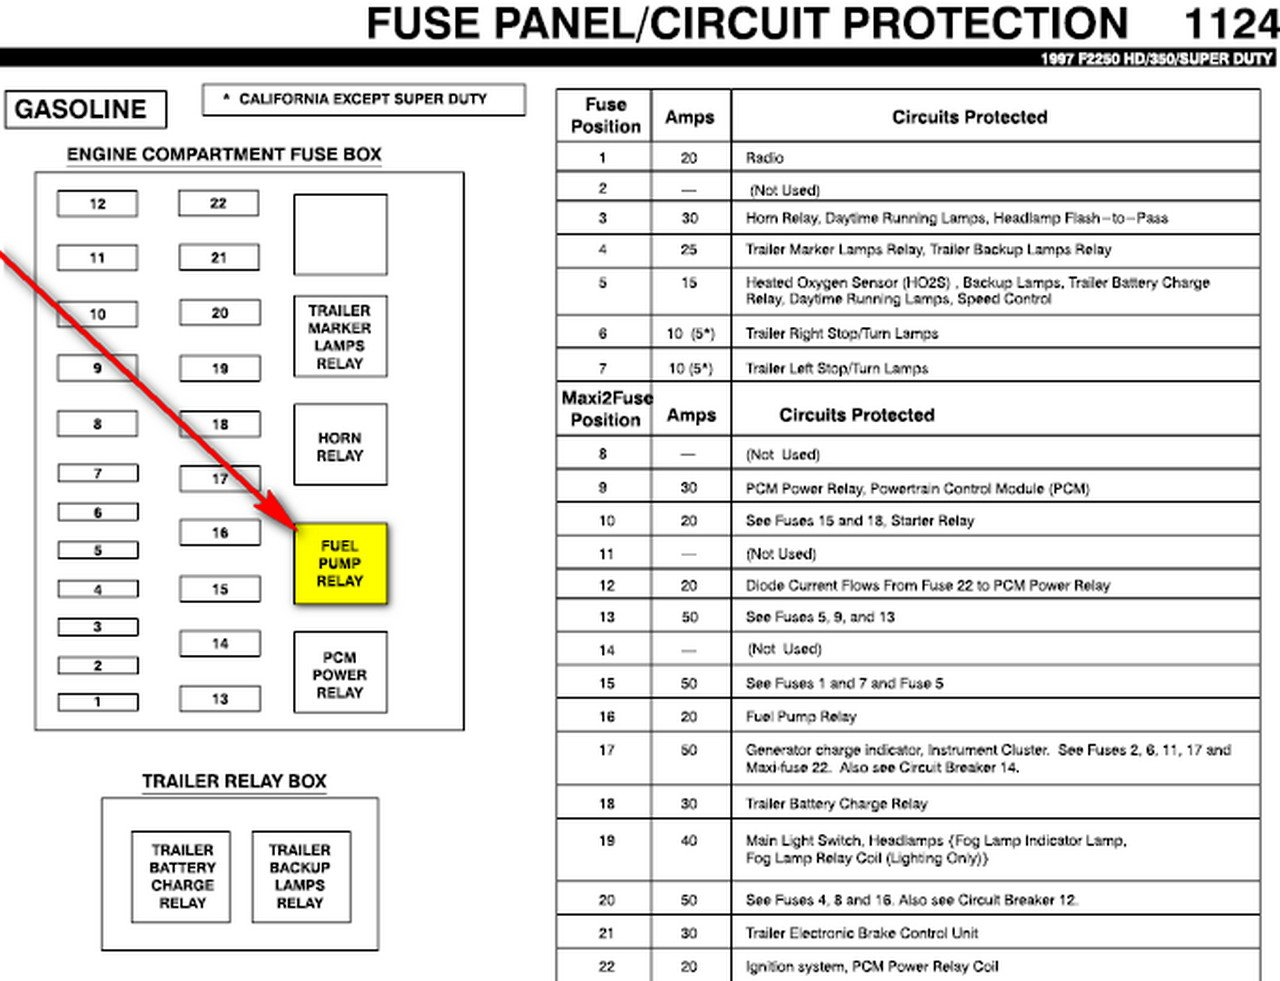 1994 Econoline Fuel Pump Wiring Diagram Will Be A Ford F 250 1997 F250 7 3 Fuse Box Detailed Schematics Rh Jppastryarts Com 350